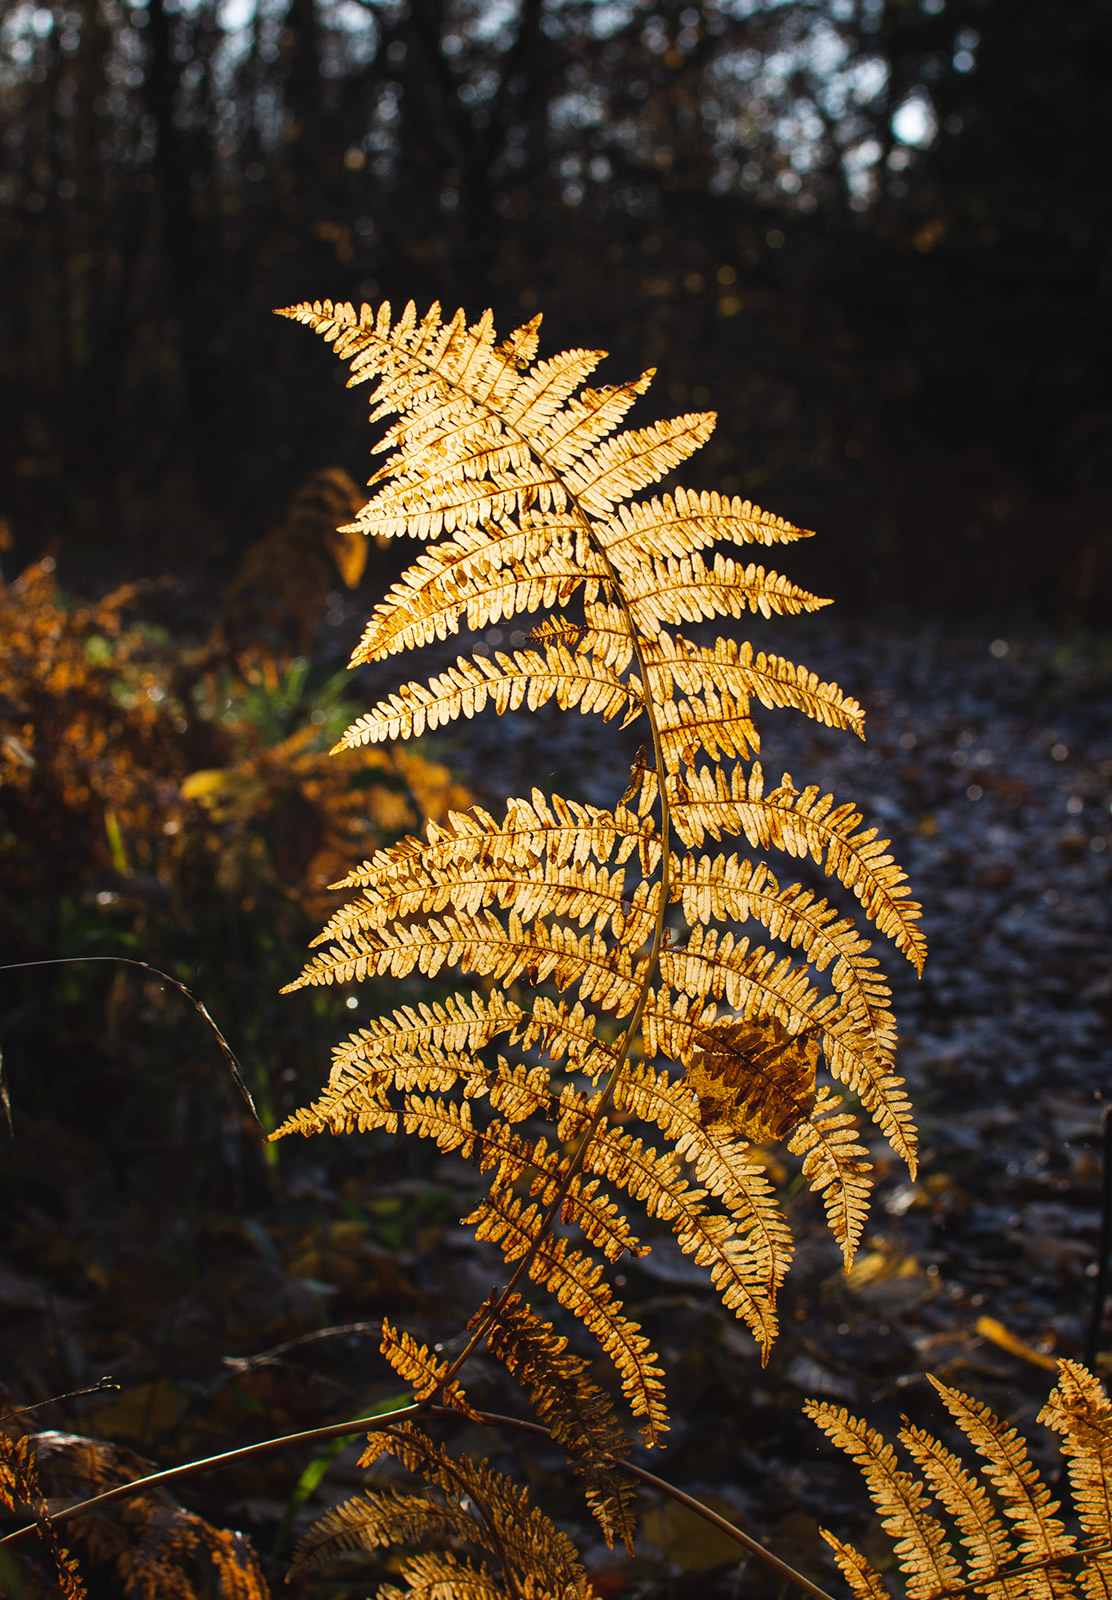 Light on yellow fern